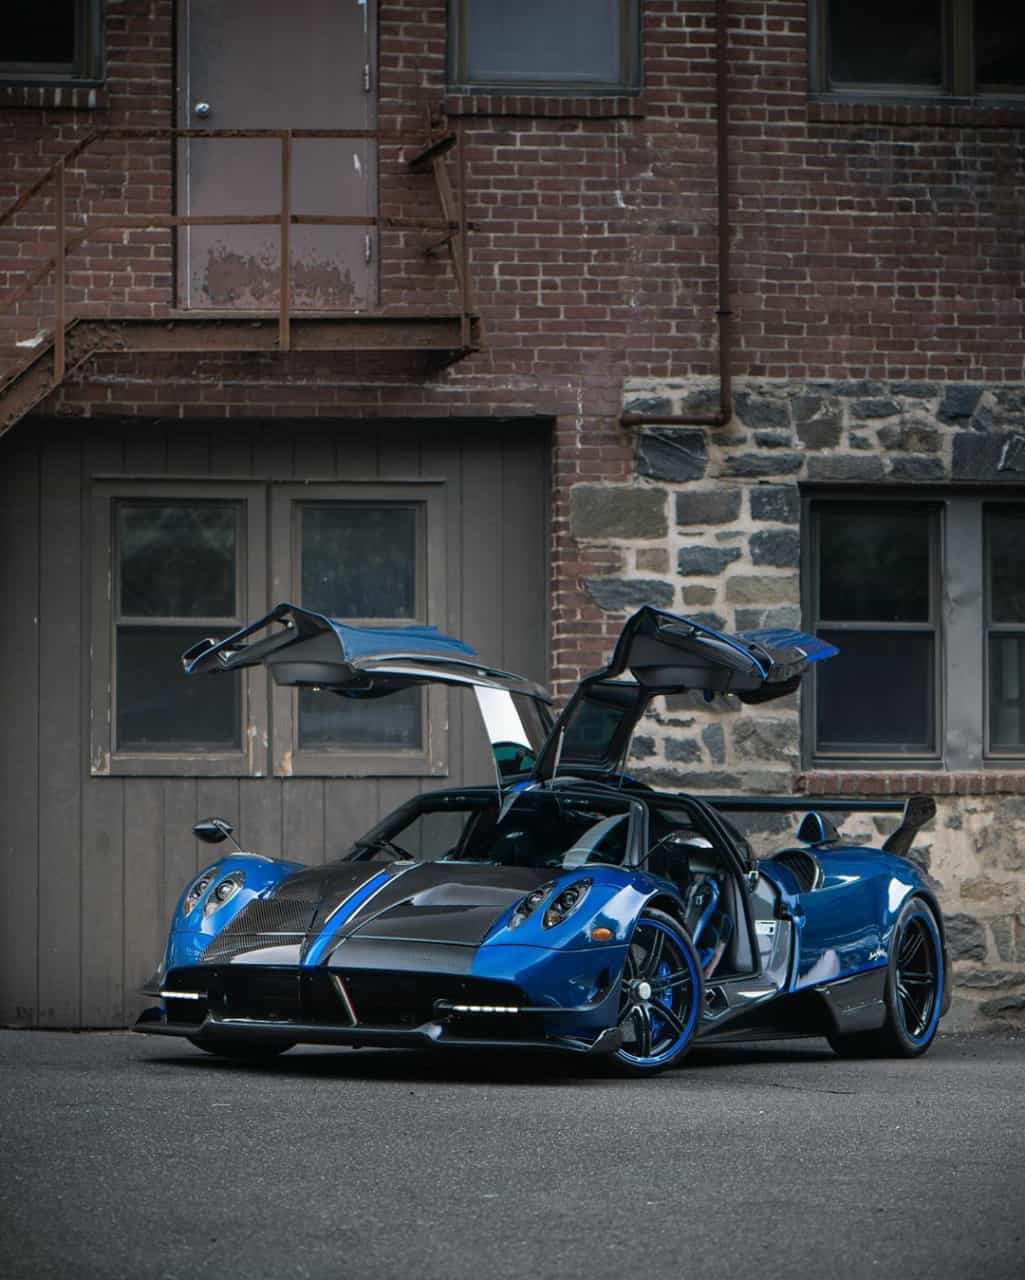 price of the Pagani Huayra Roadster BC in Nigeria